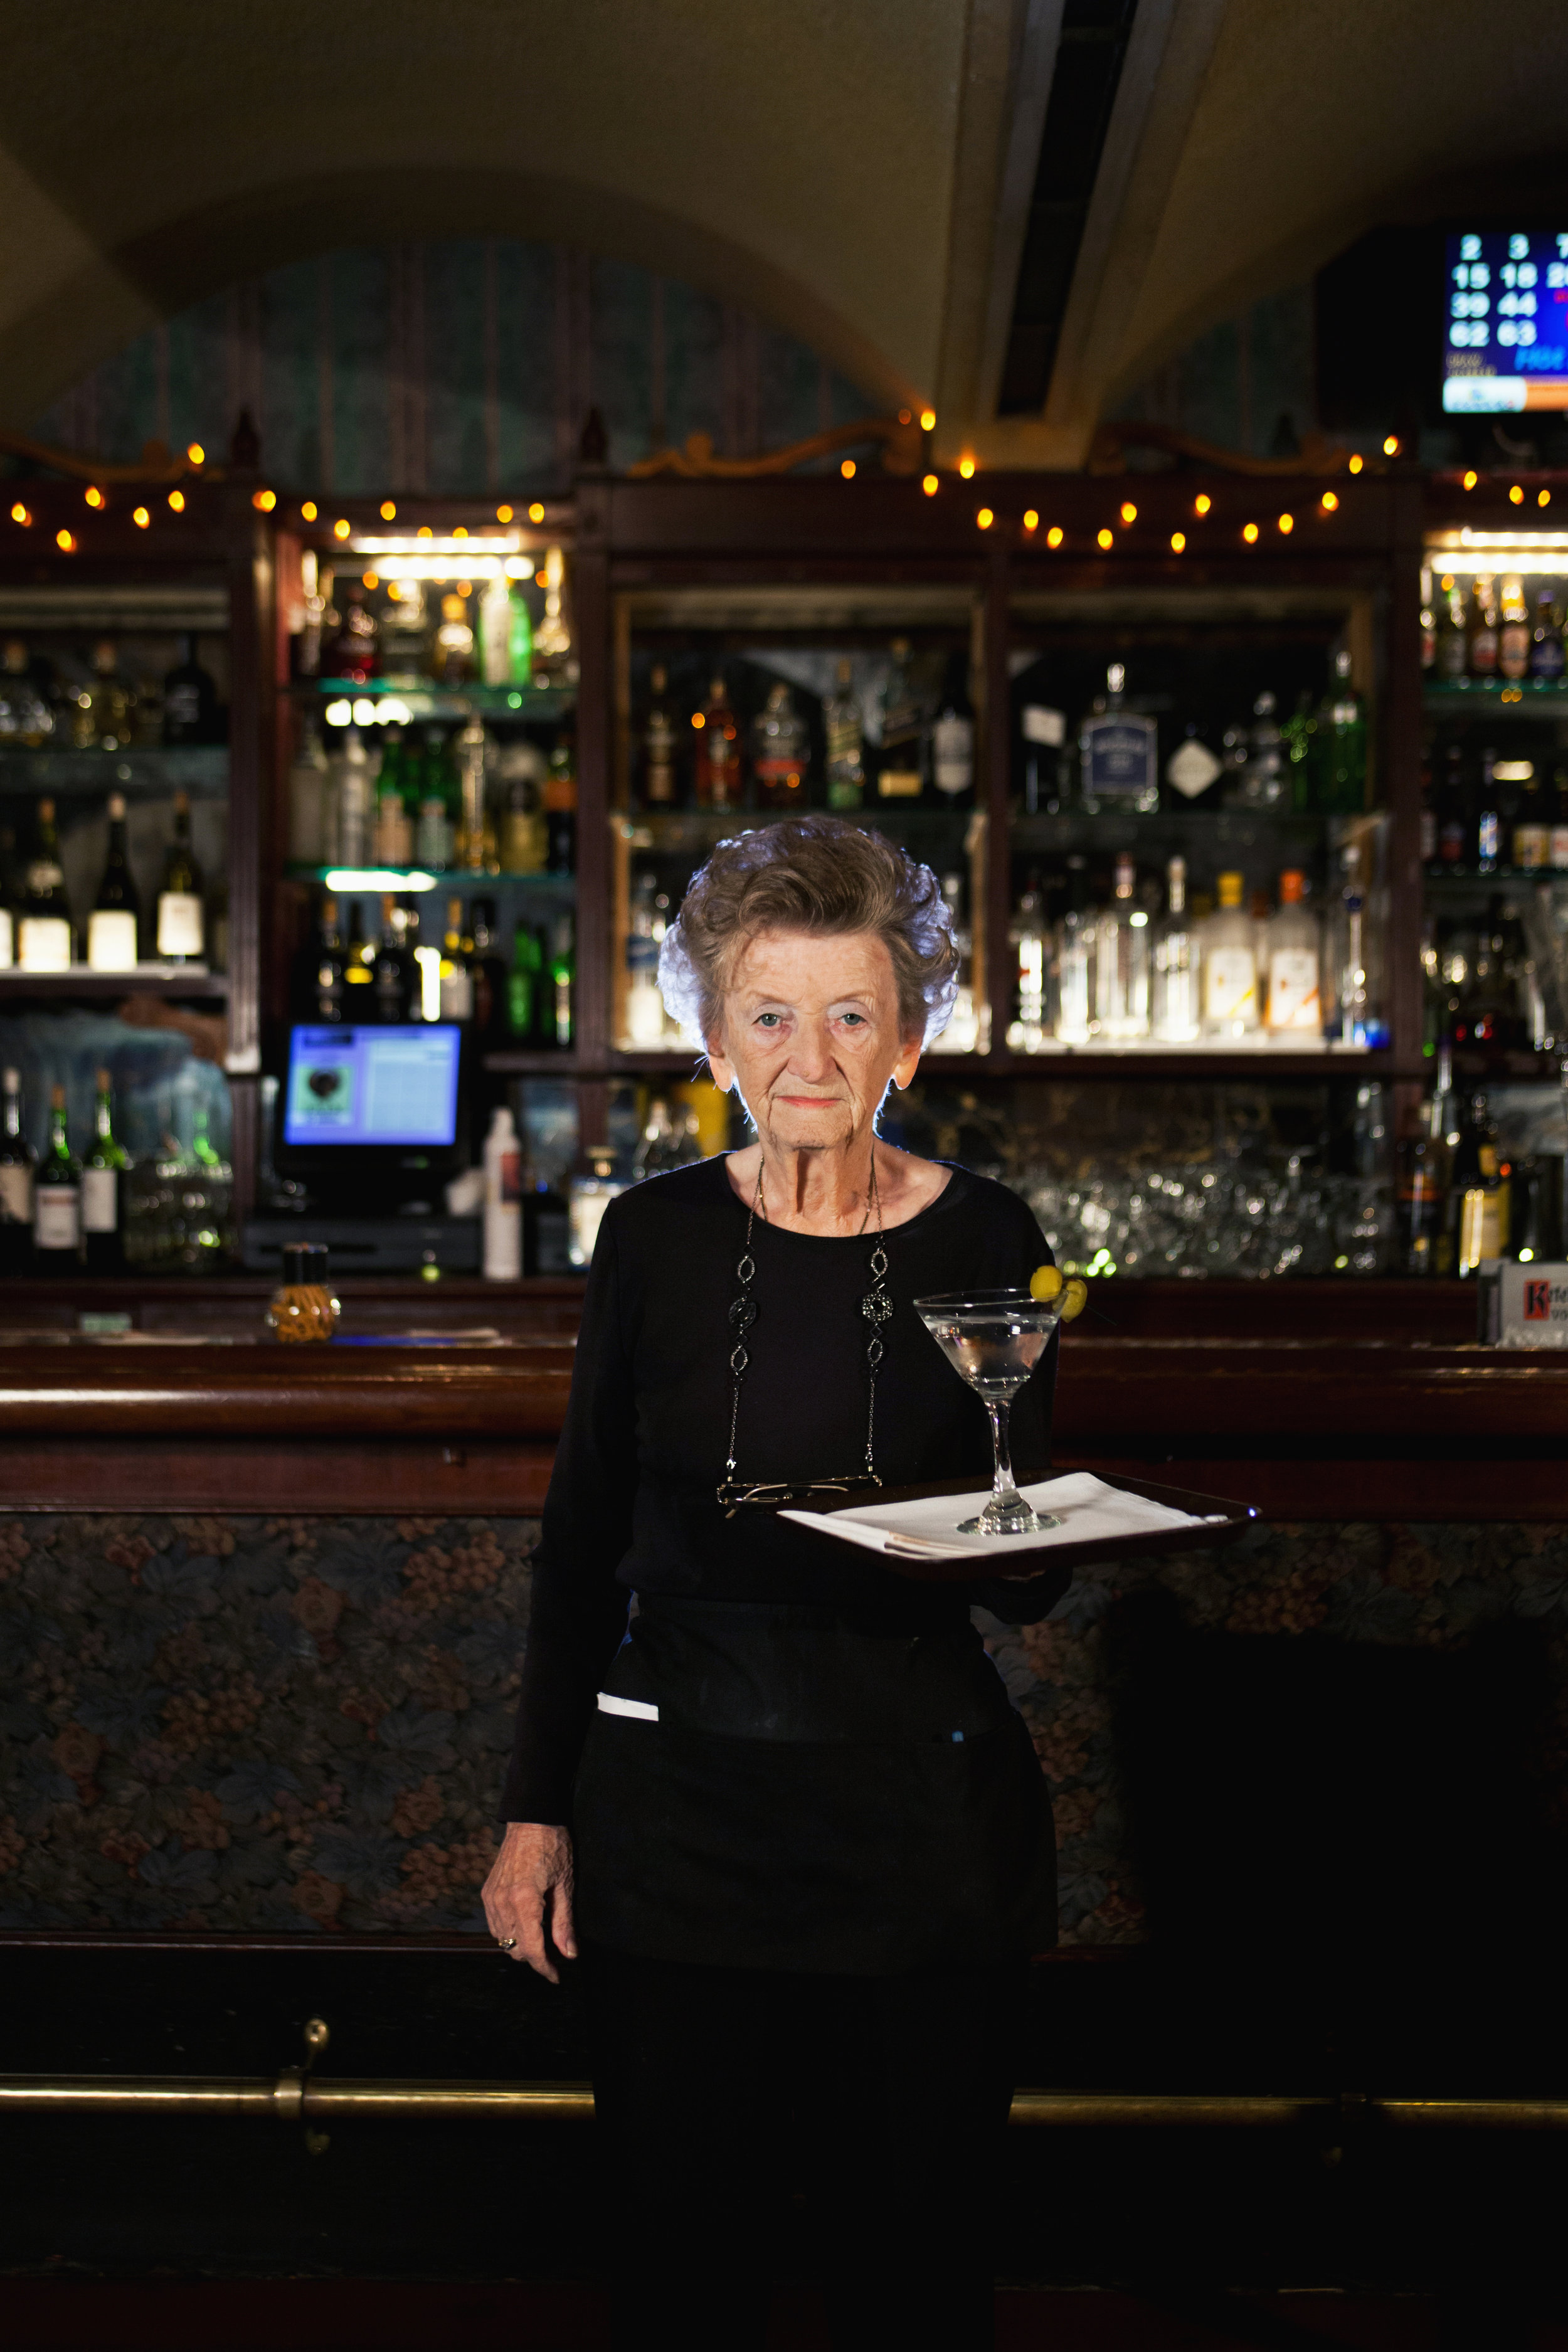 """Antonia Becerra - Antonia Becerra, 85, worked at Taix French Restaurant for 48 years. """"I got the job through a friend who used to work there and told me, 'You better come over and start working with us.'"""" She retired last year but continues to come in every Saturday. """"I never thought I'd be serving this long but it happened. The bosses were excellent."""""""